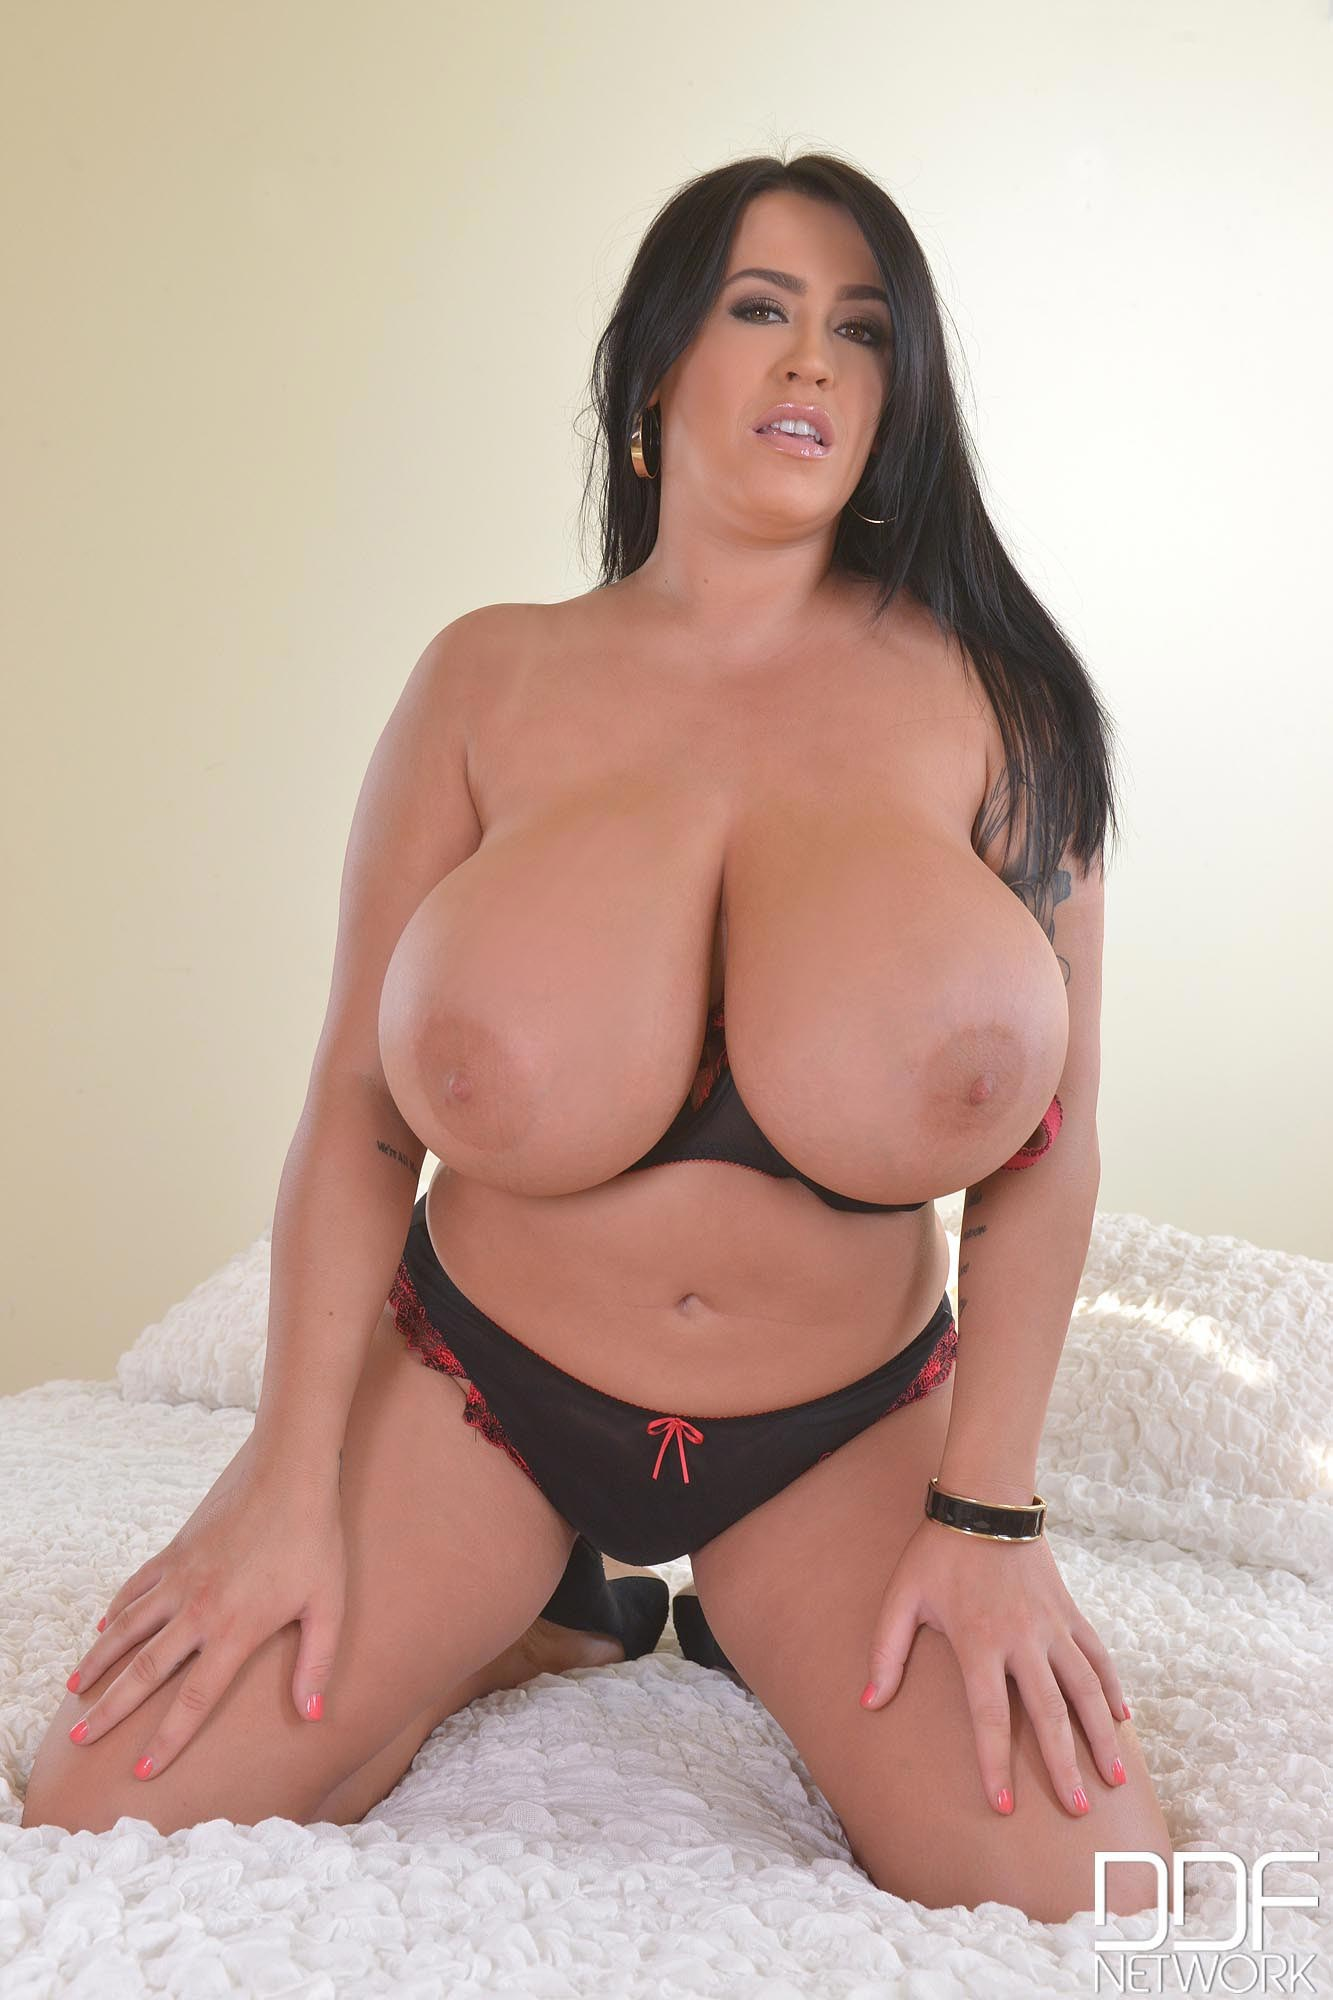 leanne-crow-in-bed52774027